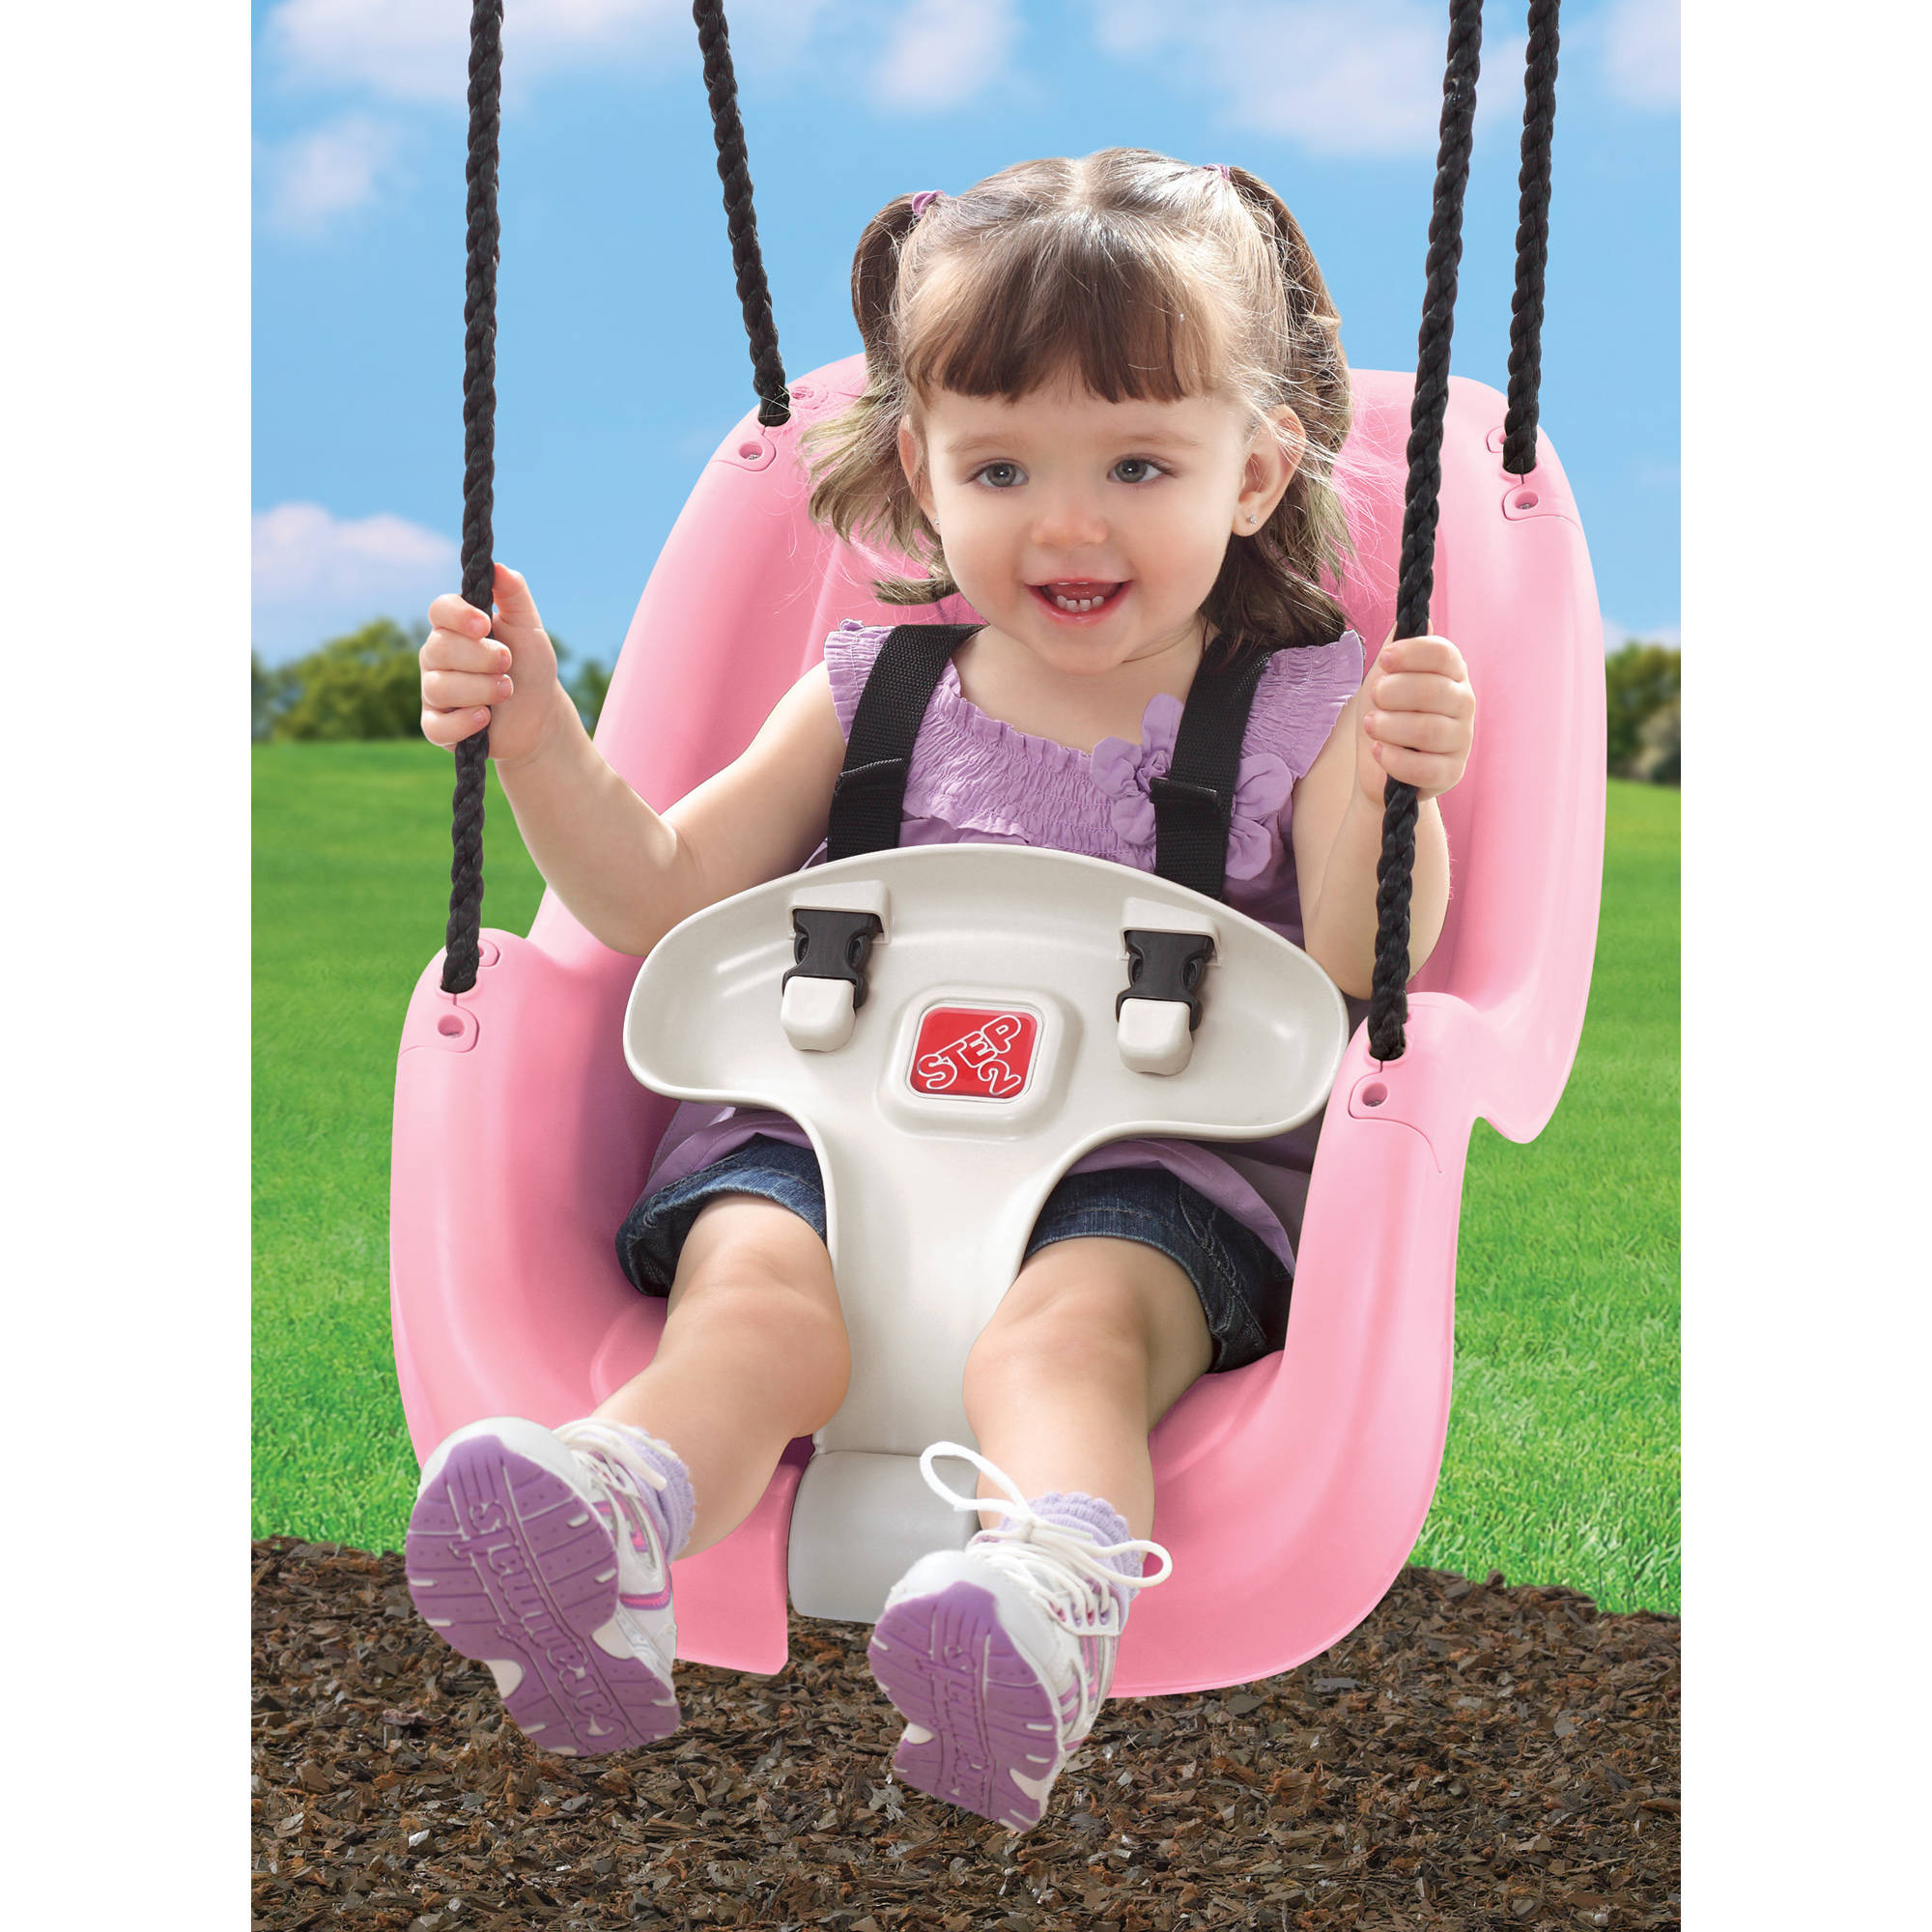 Step2 Toddler Swing, Pink